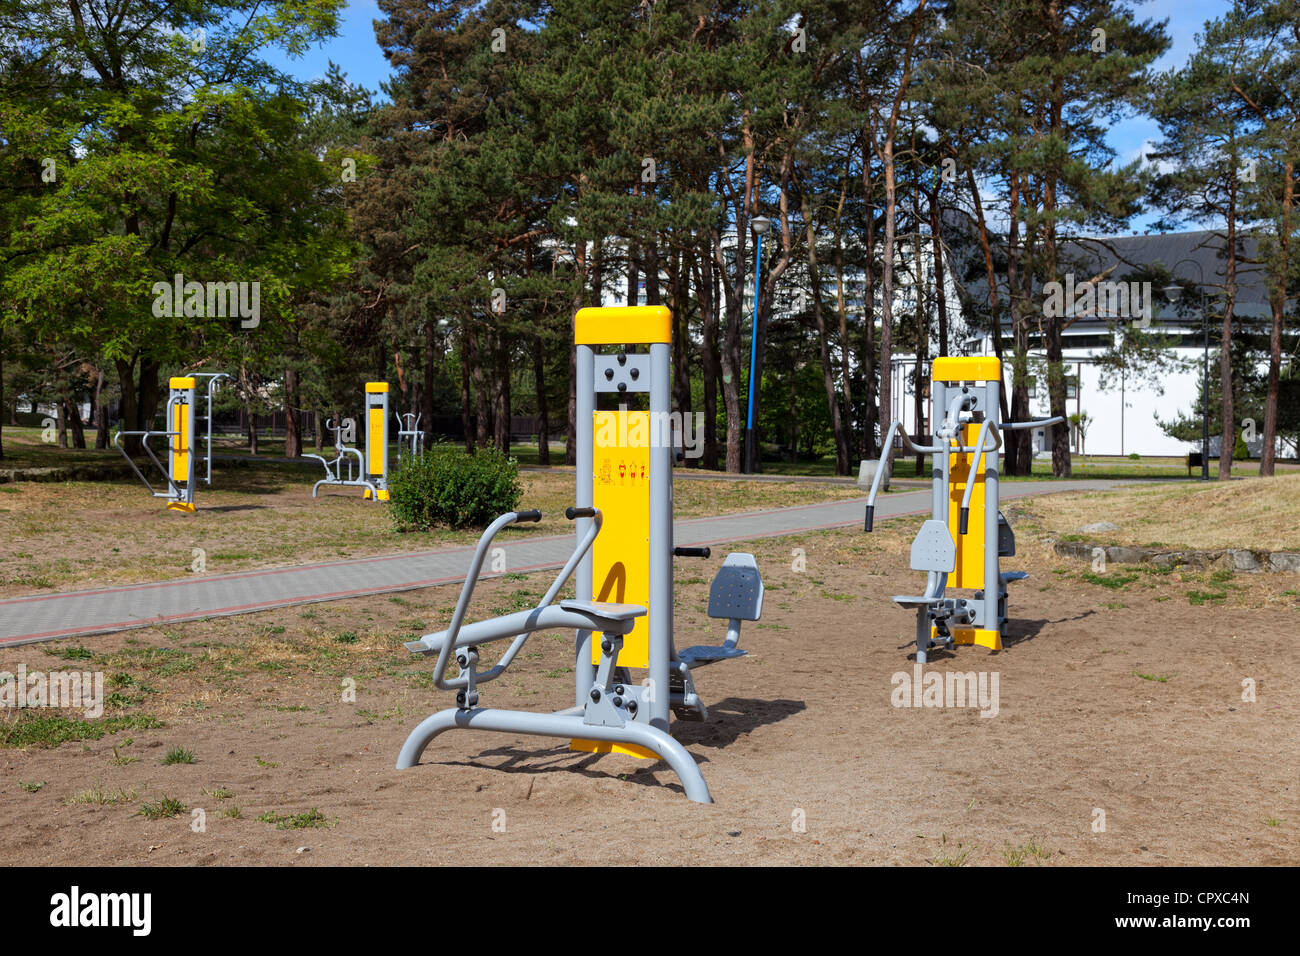 Adult exercise equipment in park. - Stock Image